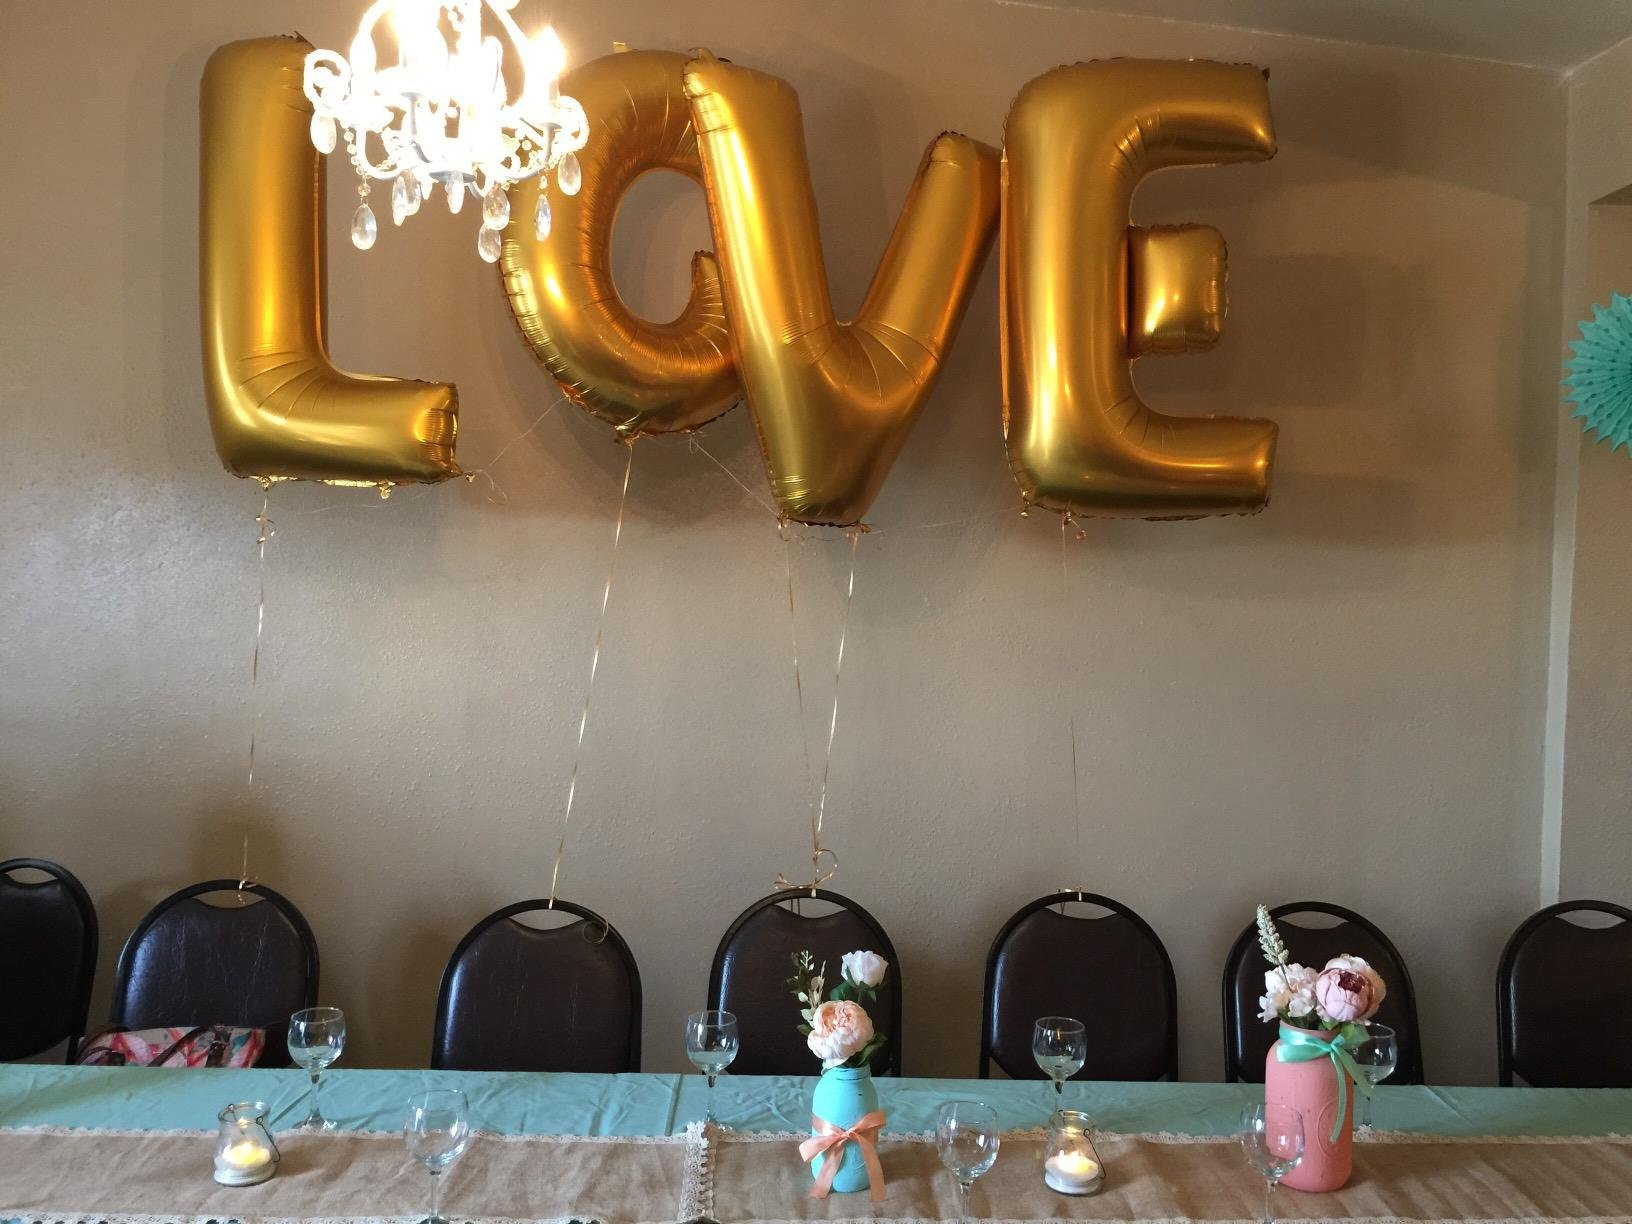 Ruimeier Love (40 Inch) and''I do'' Diamond Ring (27 Inch) Extra Large Balloon Set, Independence Day, Festival, Romantic Wedding, Bridal Shower, Anniversary, Party Decor, Vow Renewal (Golden) H007 by Ruimeier (Image #3)